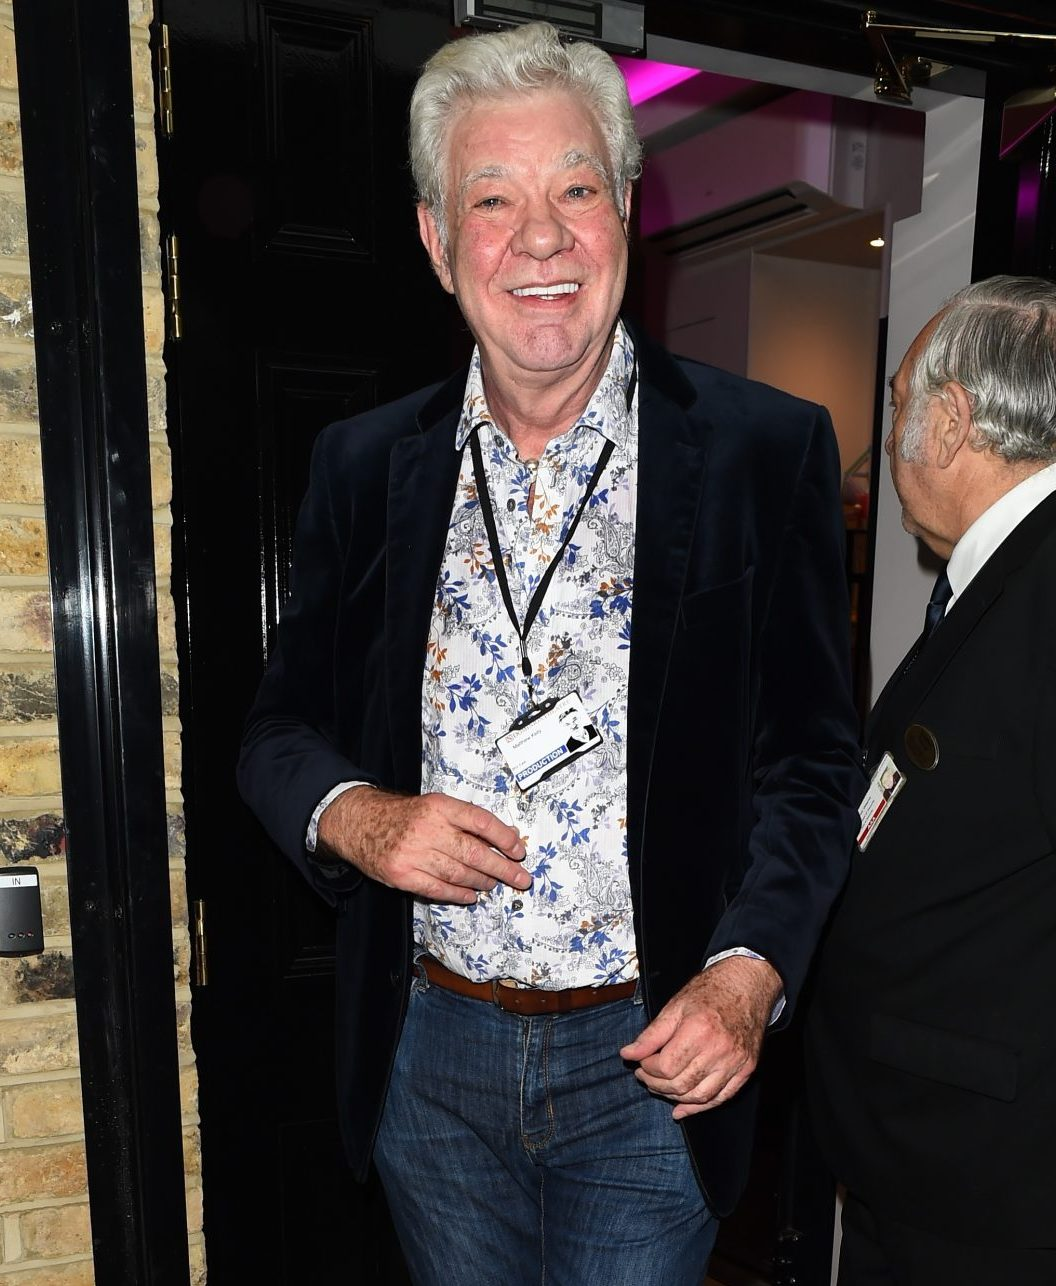 Matthew Kelly hosted the original series of Stars In Their Eyes, which is being remade